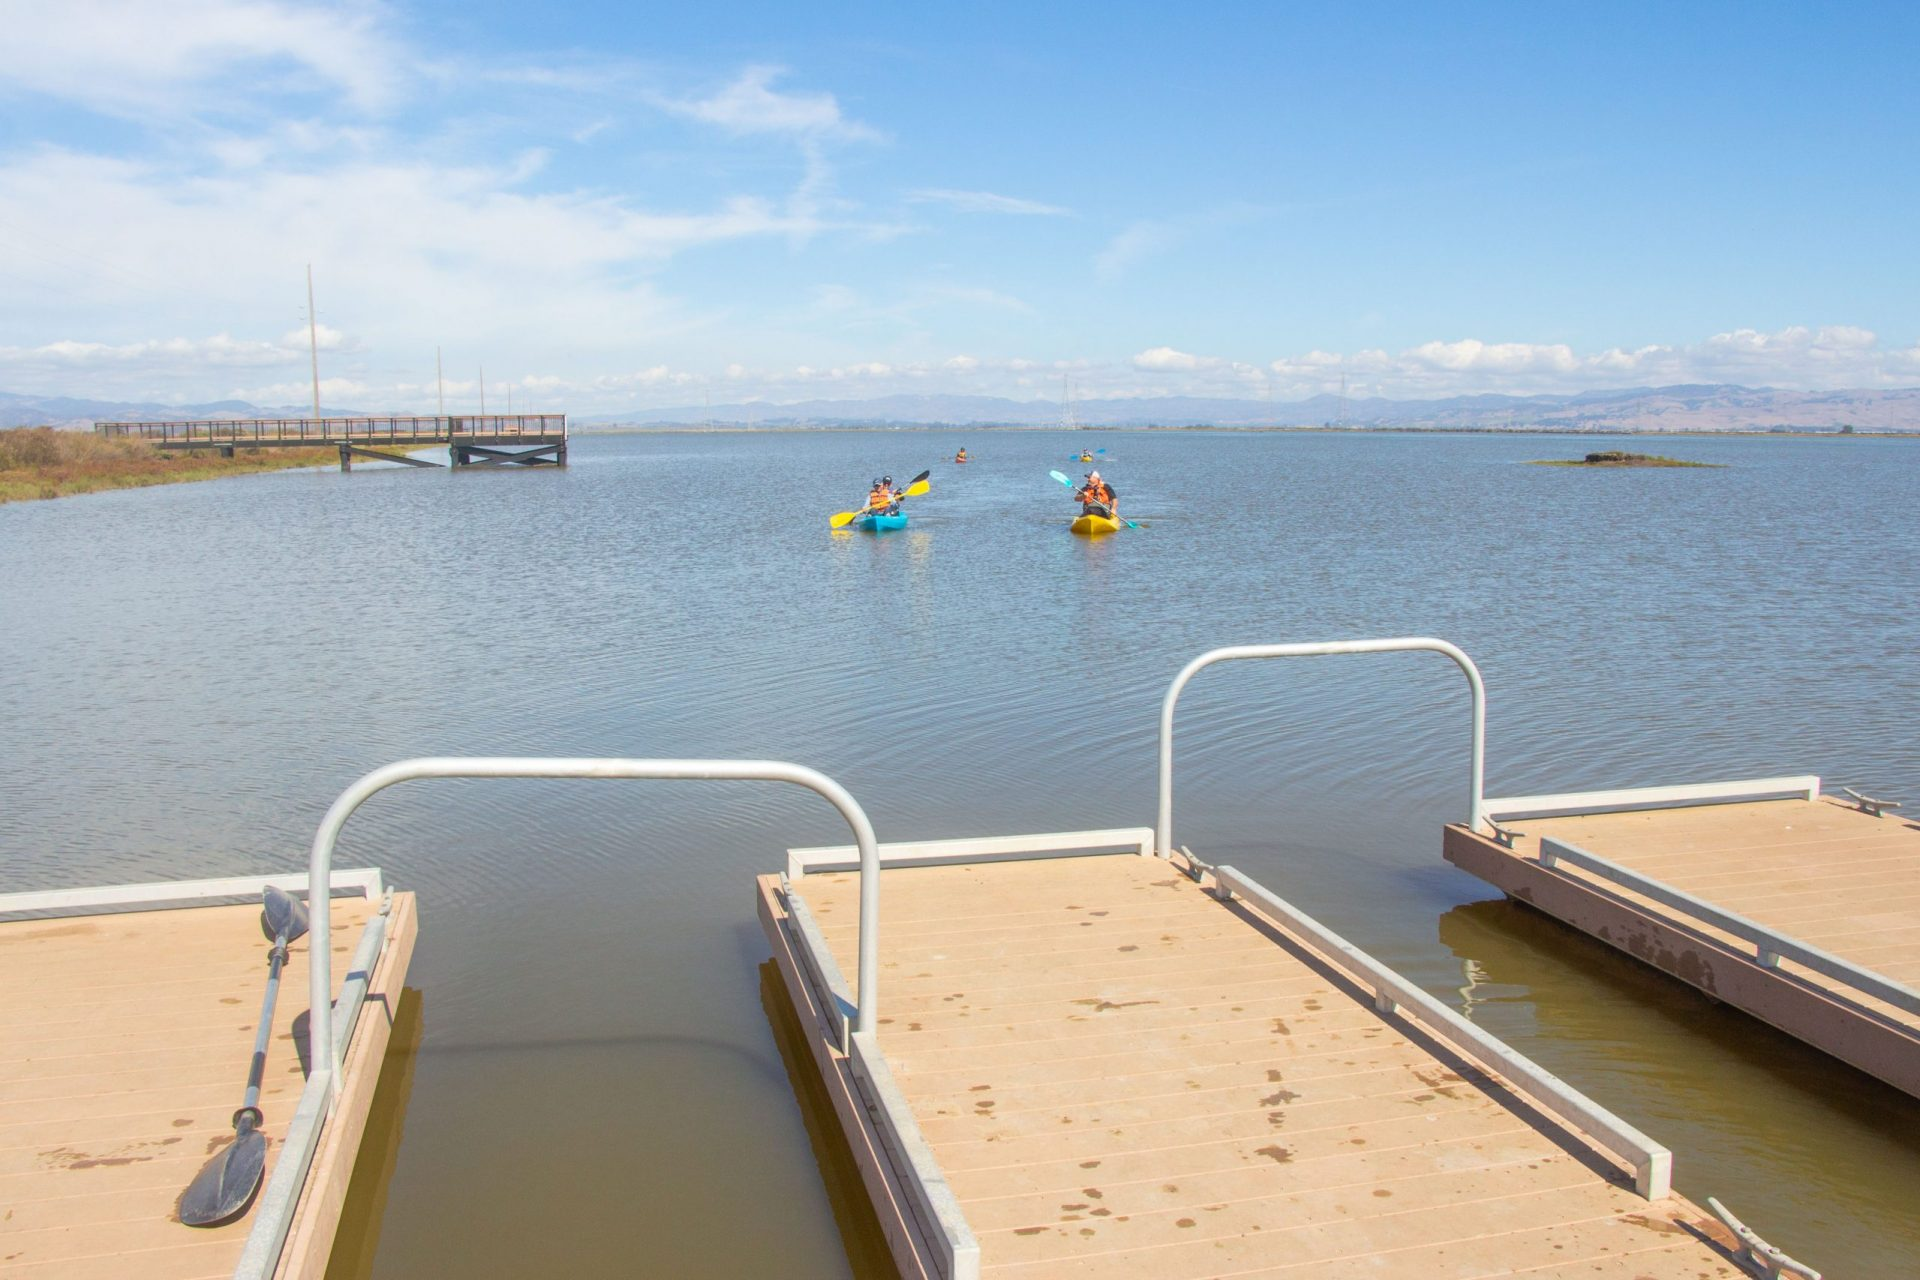 Kayakers paddling by piers